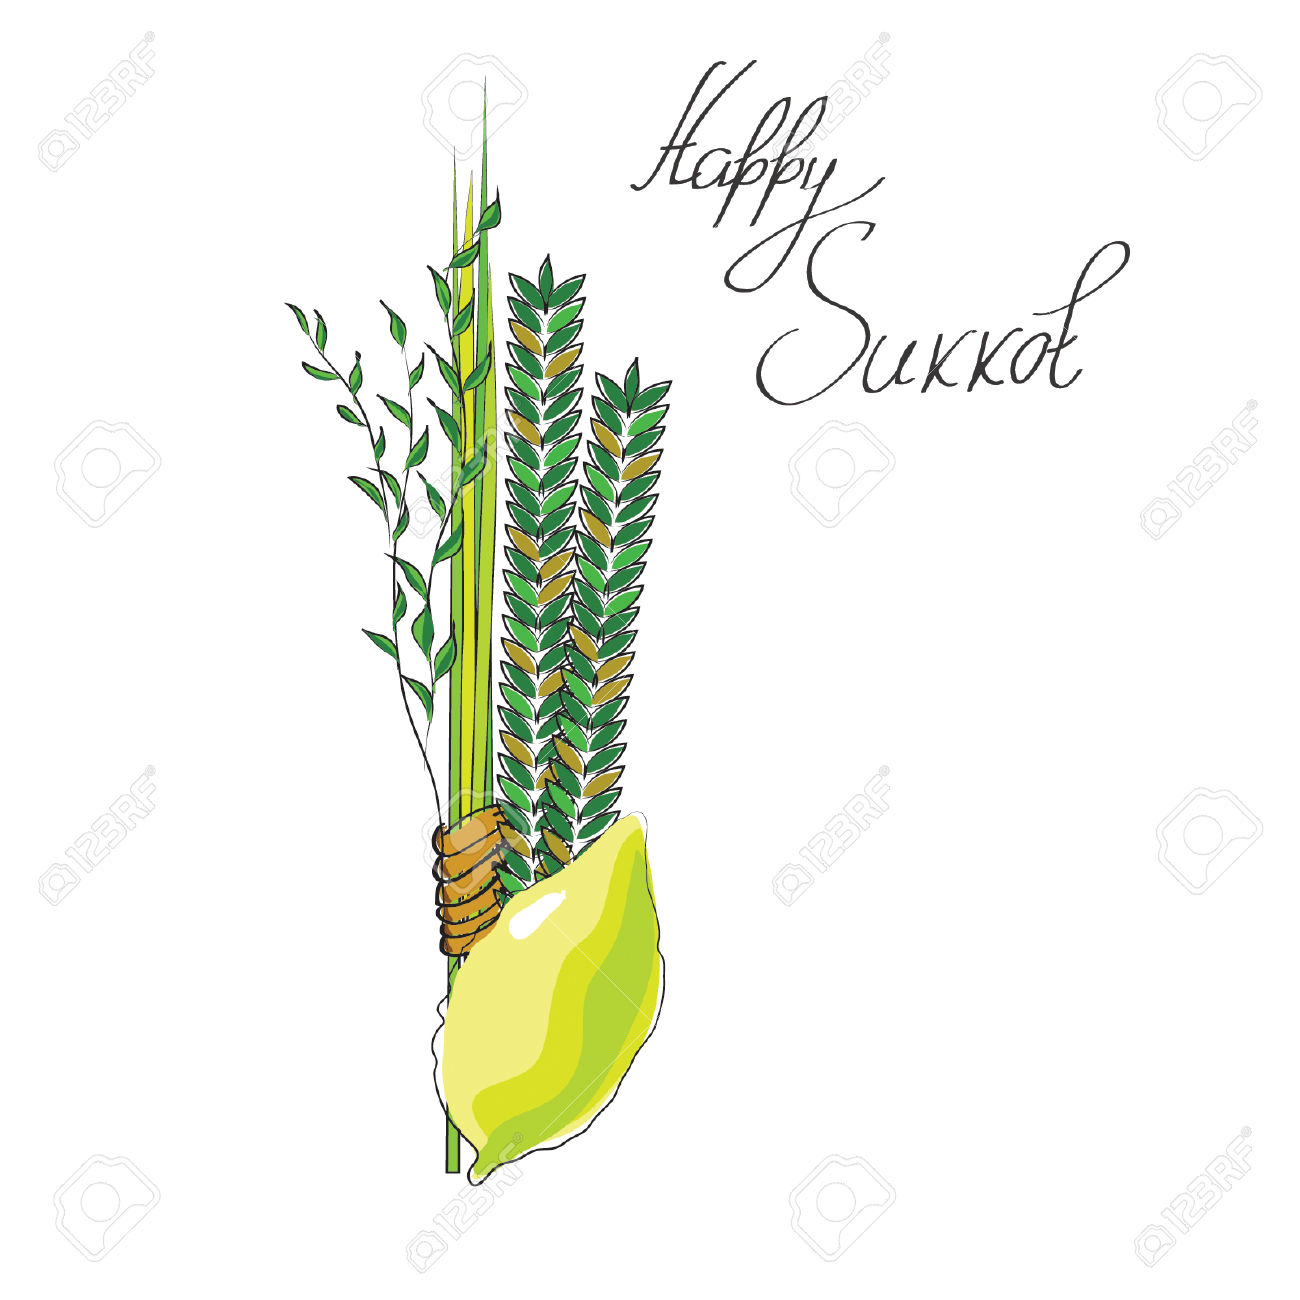 Palm willow clipart #5